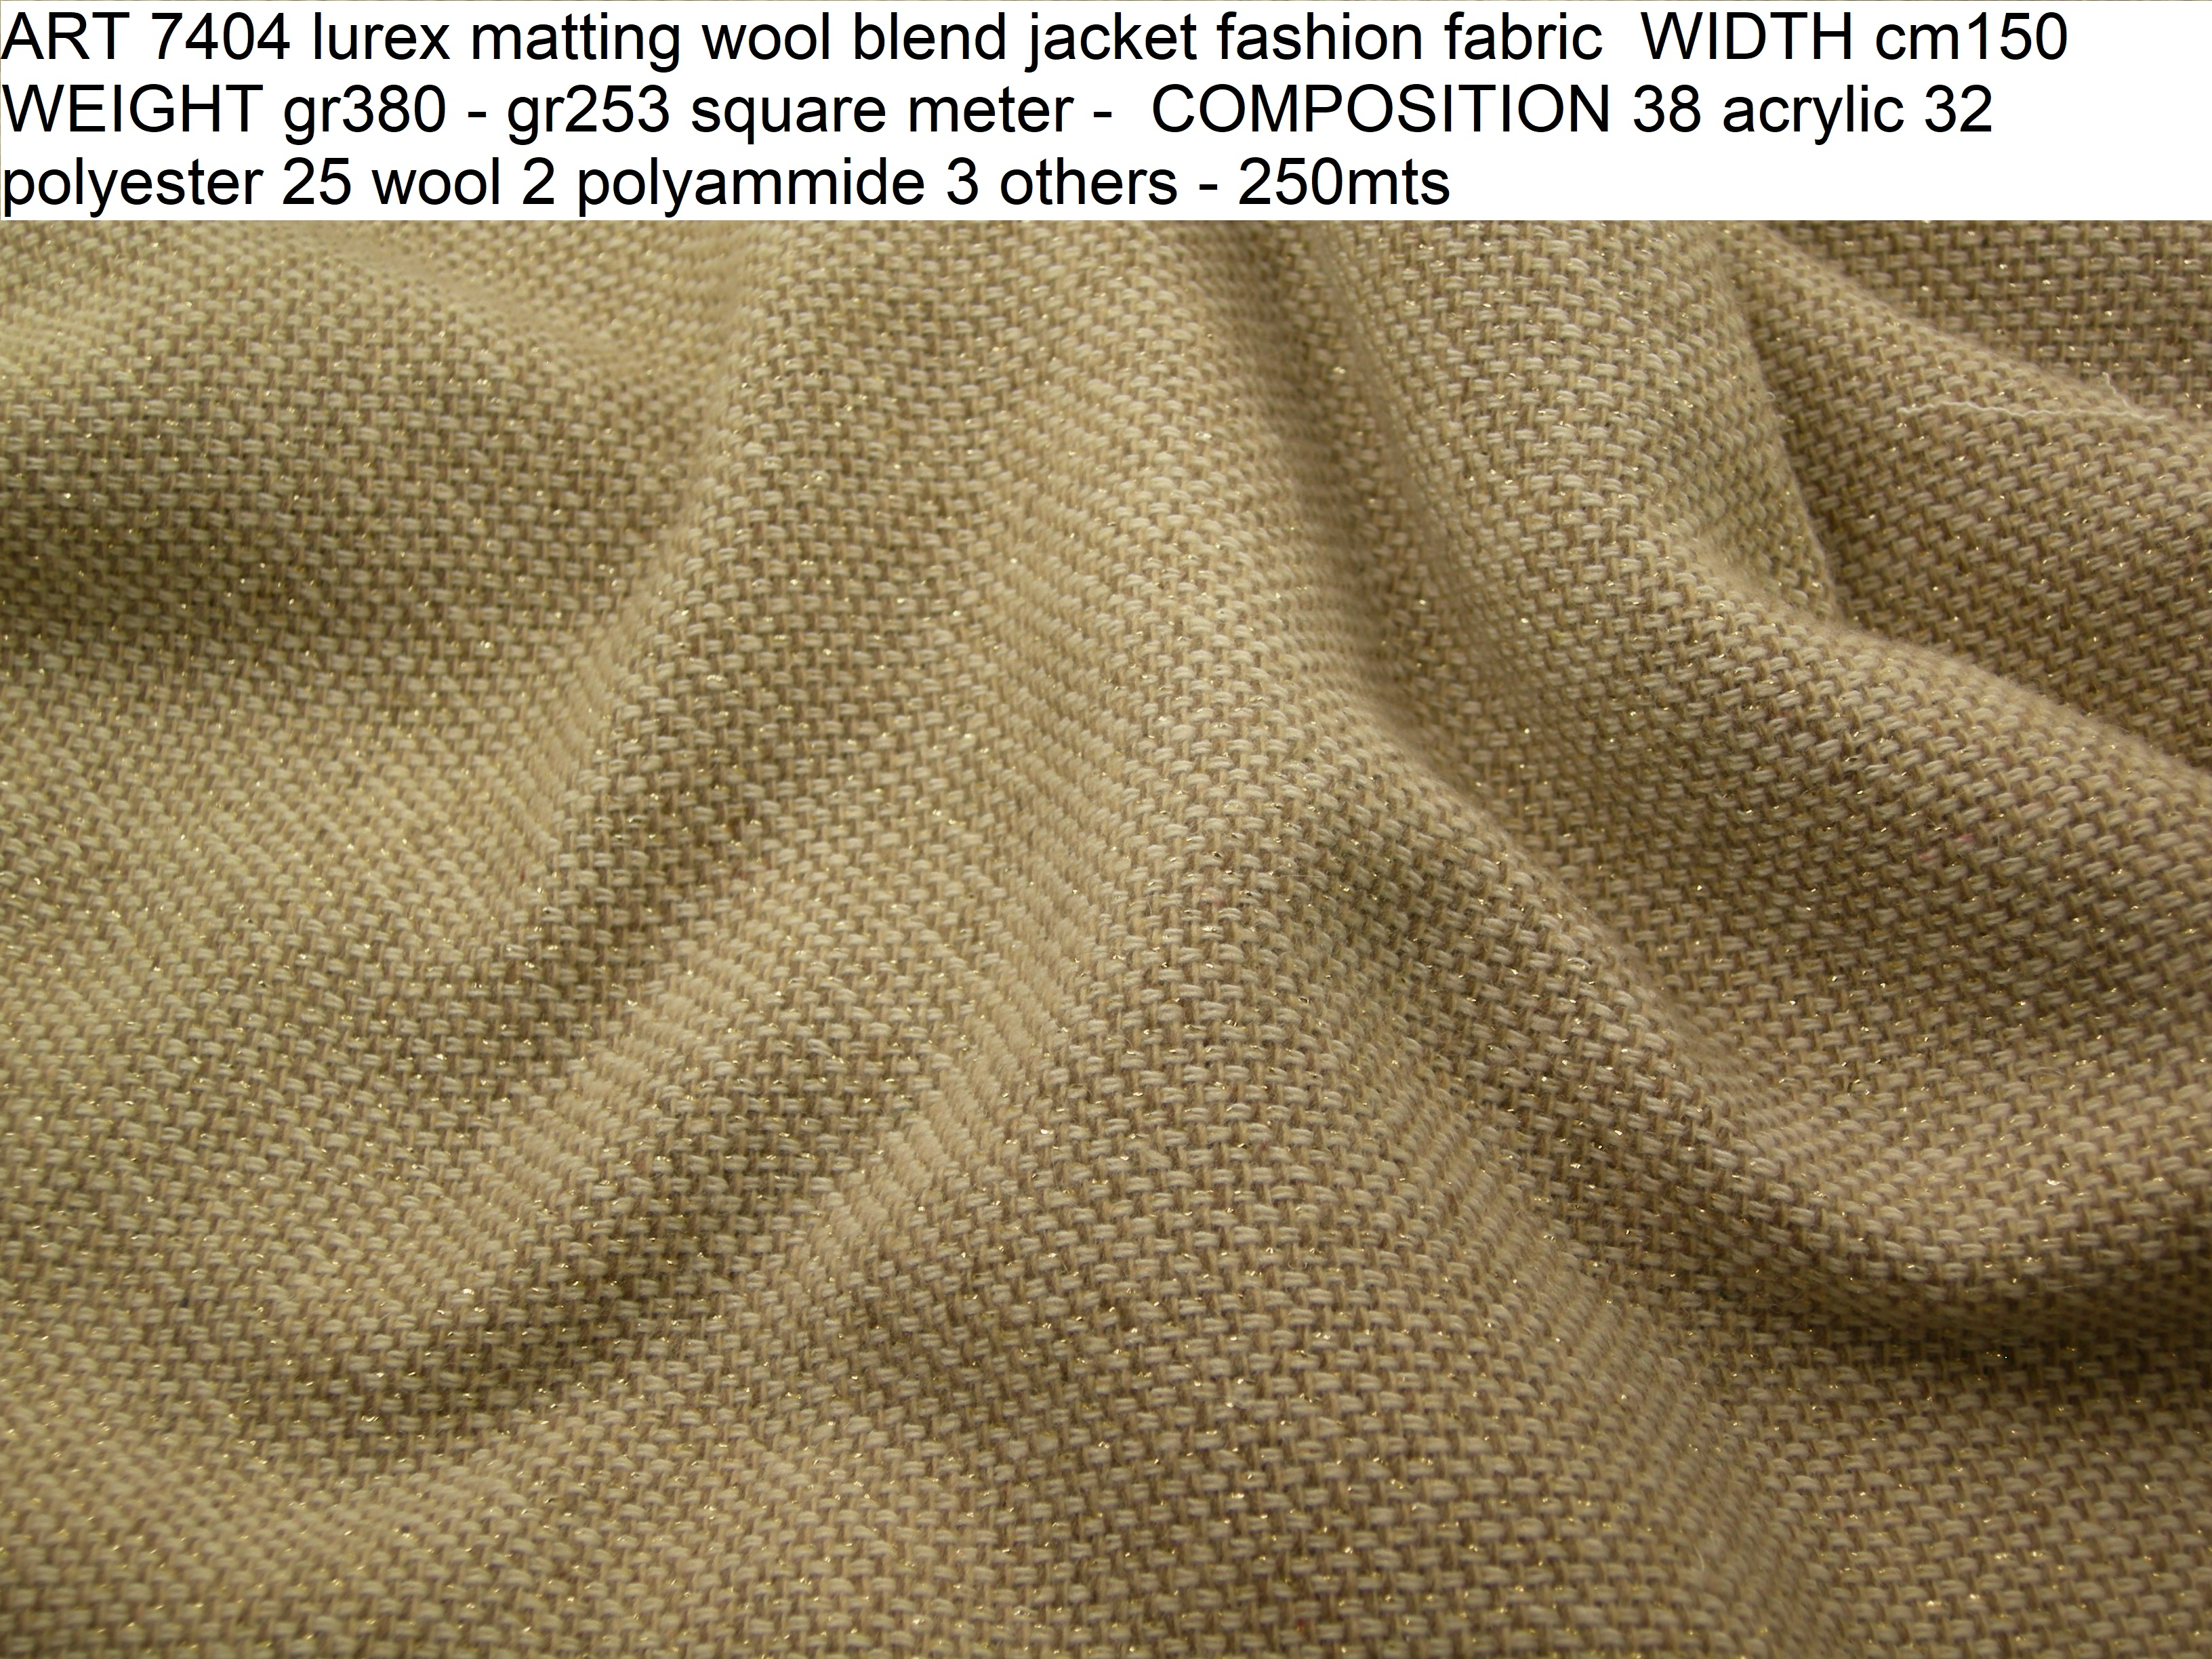 ART 7404 lurex matting wool blend jacket fashion fabric WIDTH cm150 WEIGHT gr380 - gr253 square meter - COMPOSITION 38 acrylic 32 polyester 25 wool 2 polyammide 3 others - 250mts